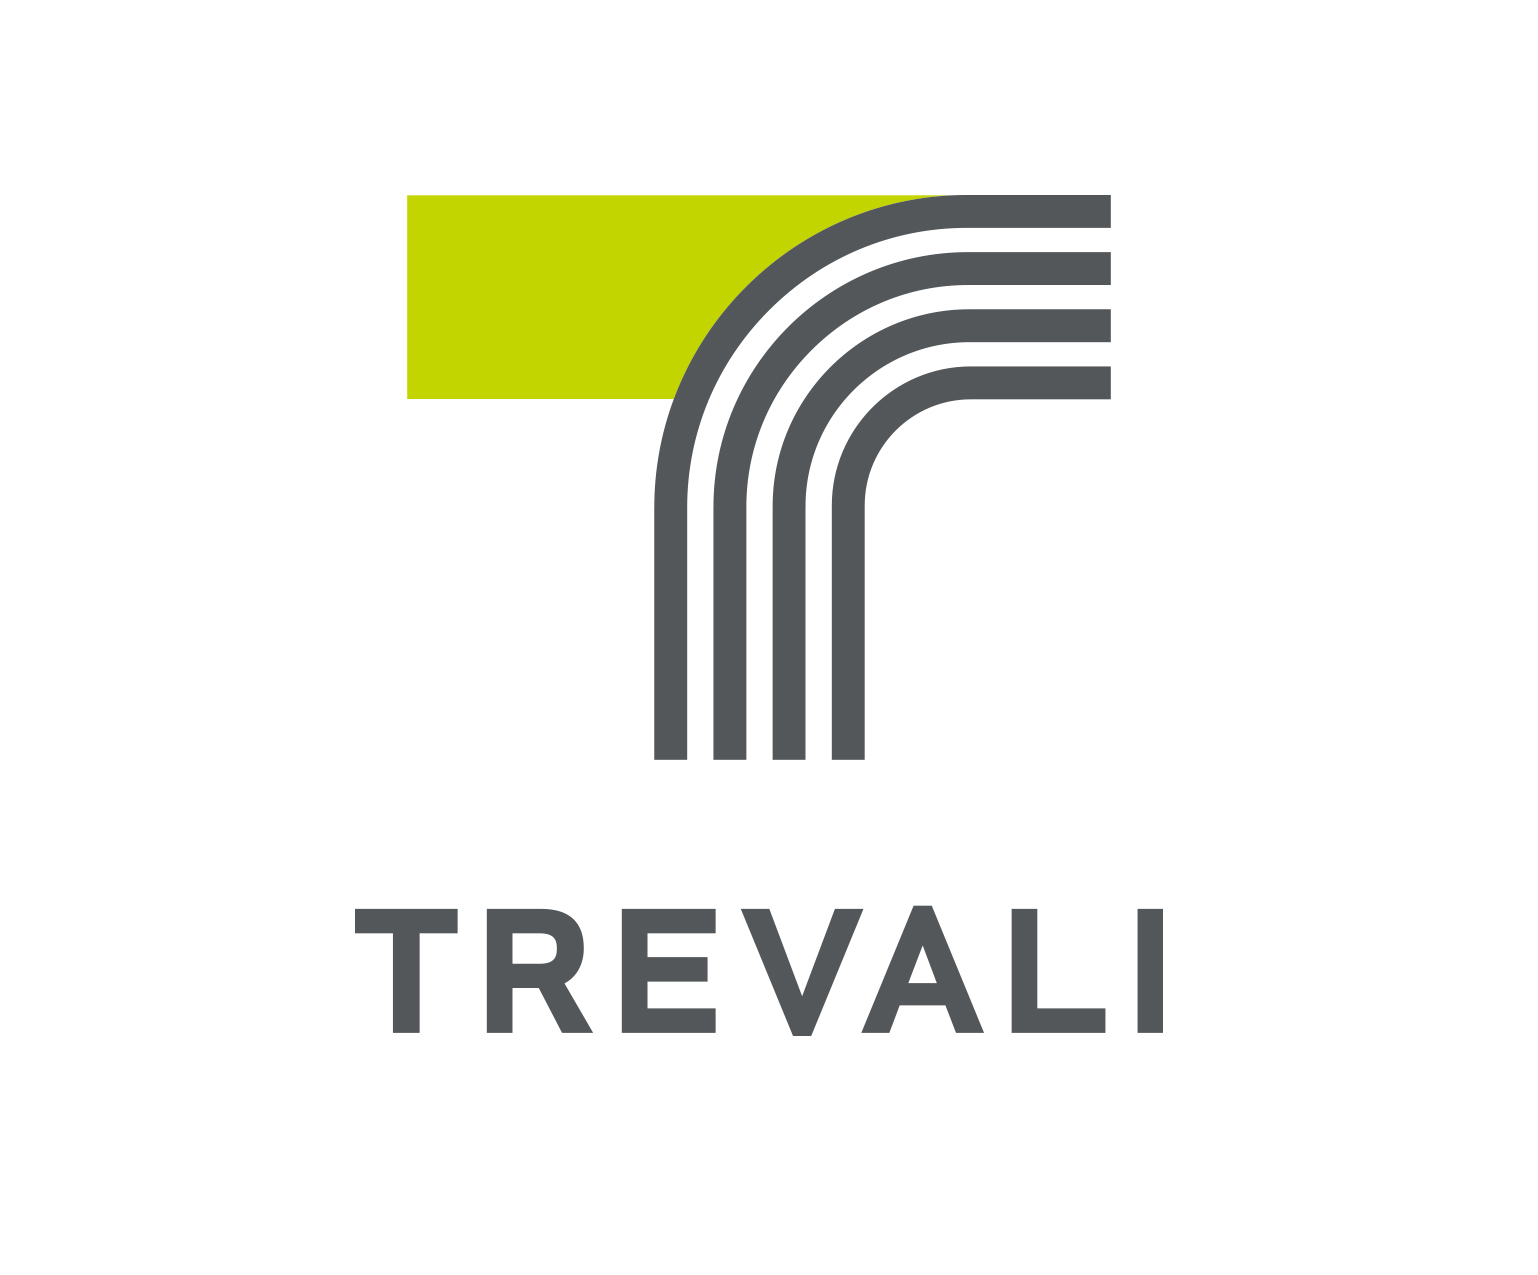 Trevali Reports 2019 Mineral Reserves and Resources; Increases Reserves at Rosh Pinah Mine and Grows Global Resource Base